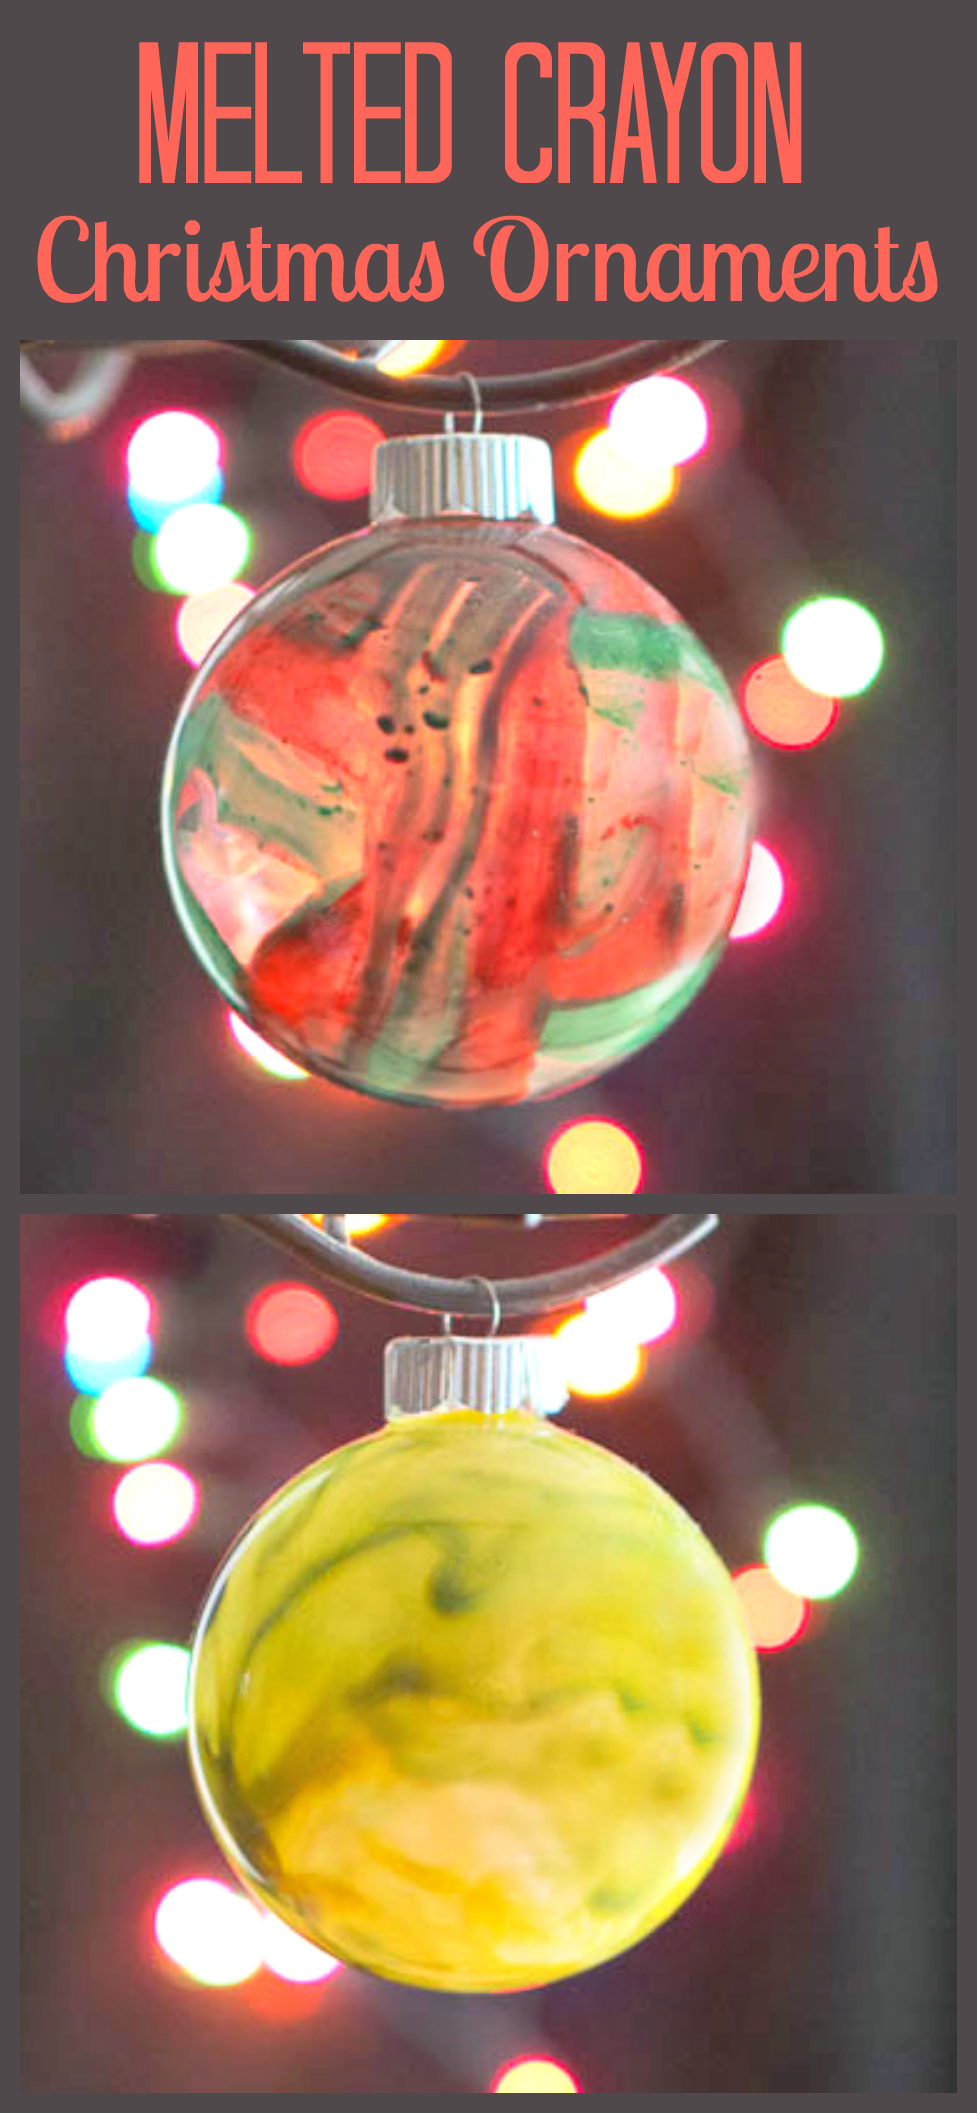 Melted Crayon Ornaments - A fun and easy Christmas Craft using broken crayons and a blow dryer.